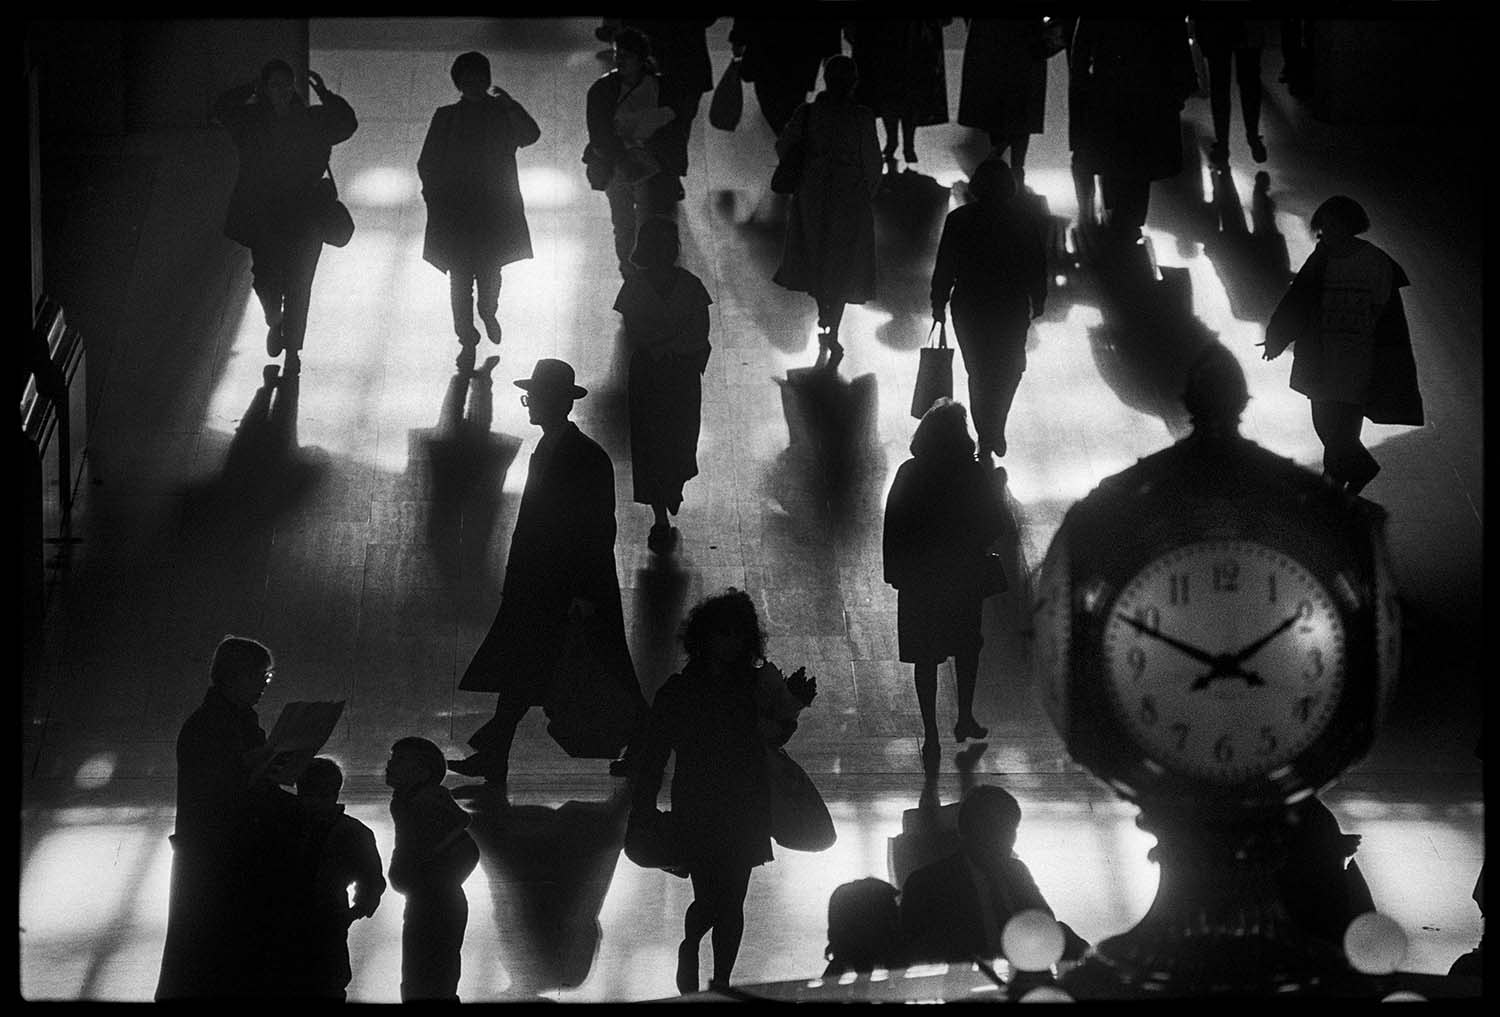 <p>Grand Central Terminal, New York City, 1990. (© Richard Sandler/The Eyes of the City) </p>